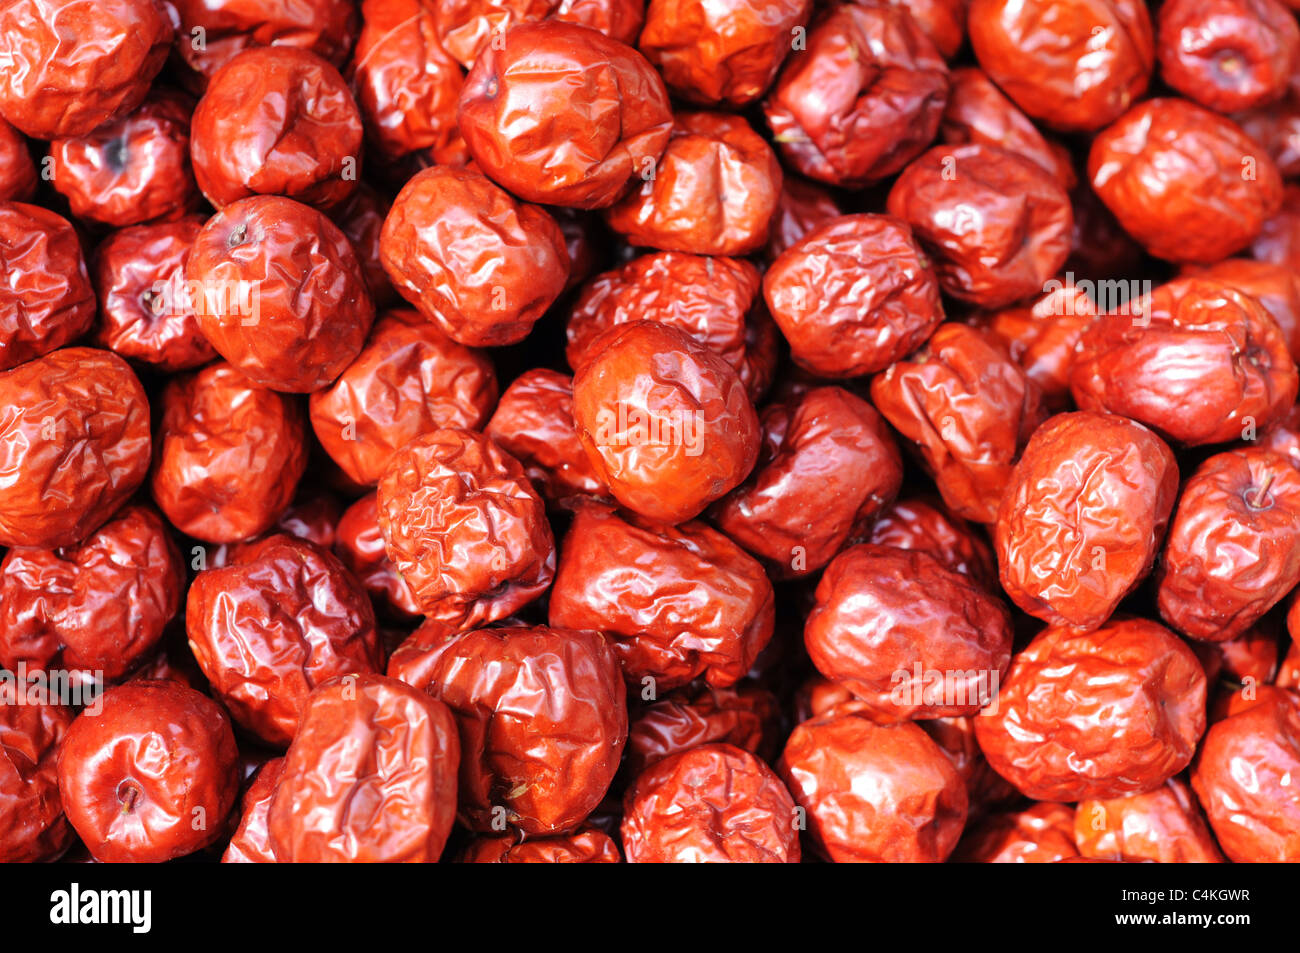 A pile of red Chinese date(or jujube) fruits in autumn. - Stock Image